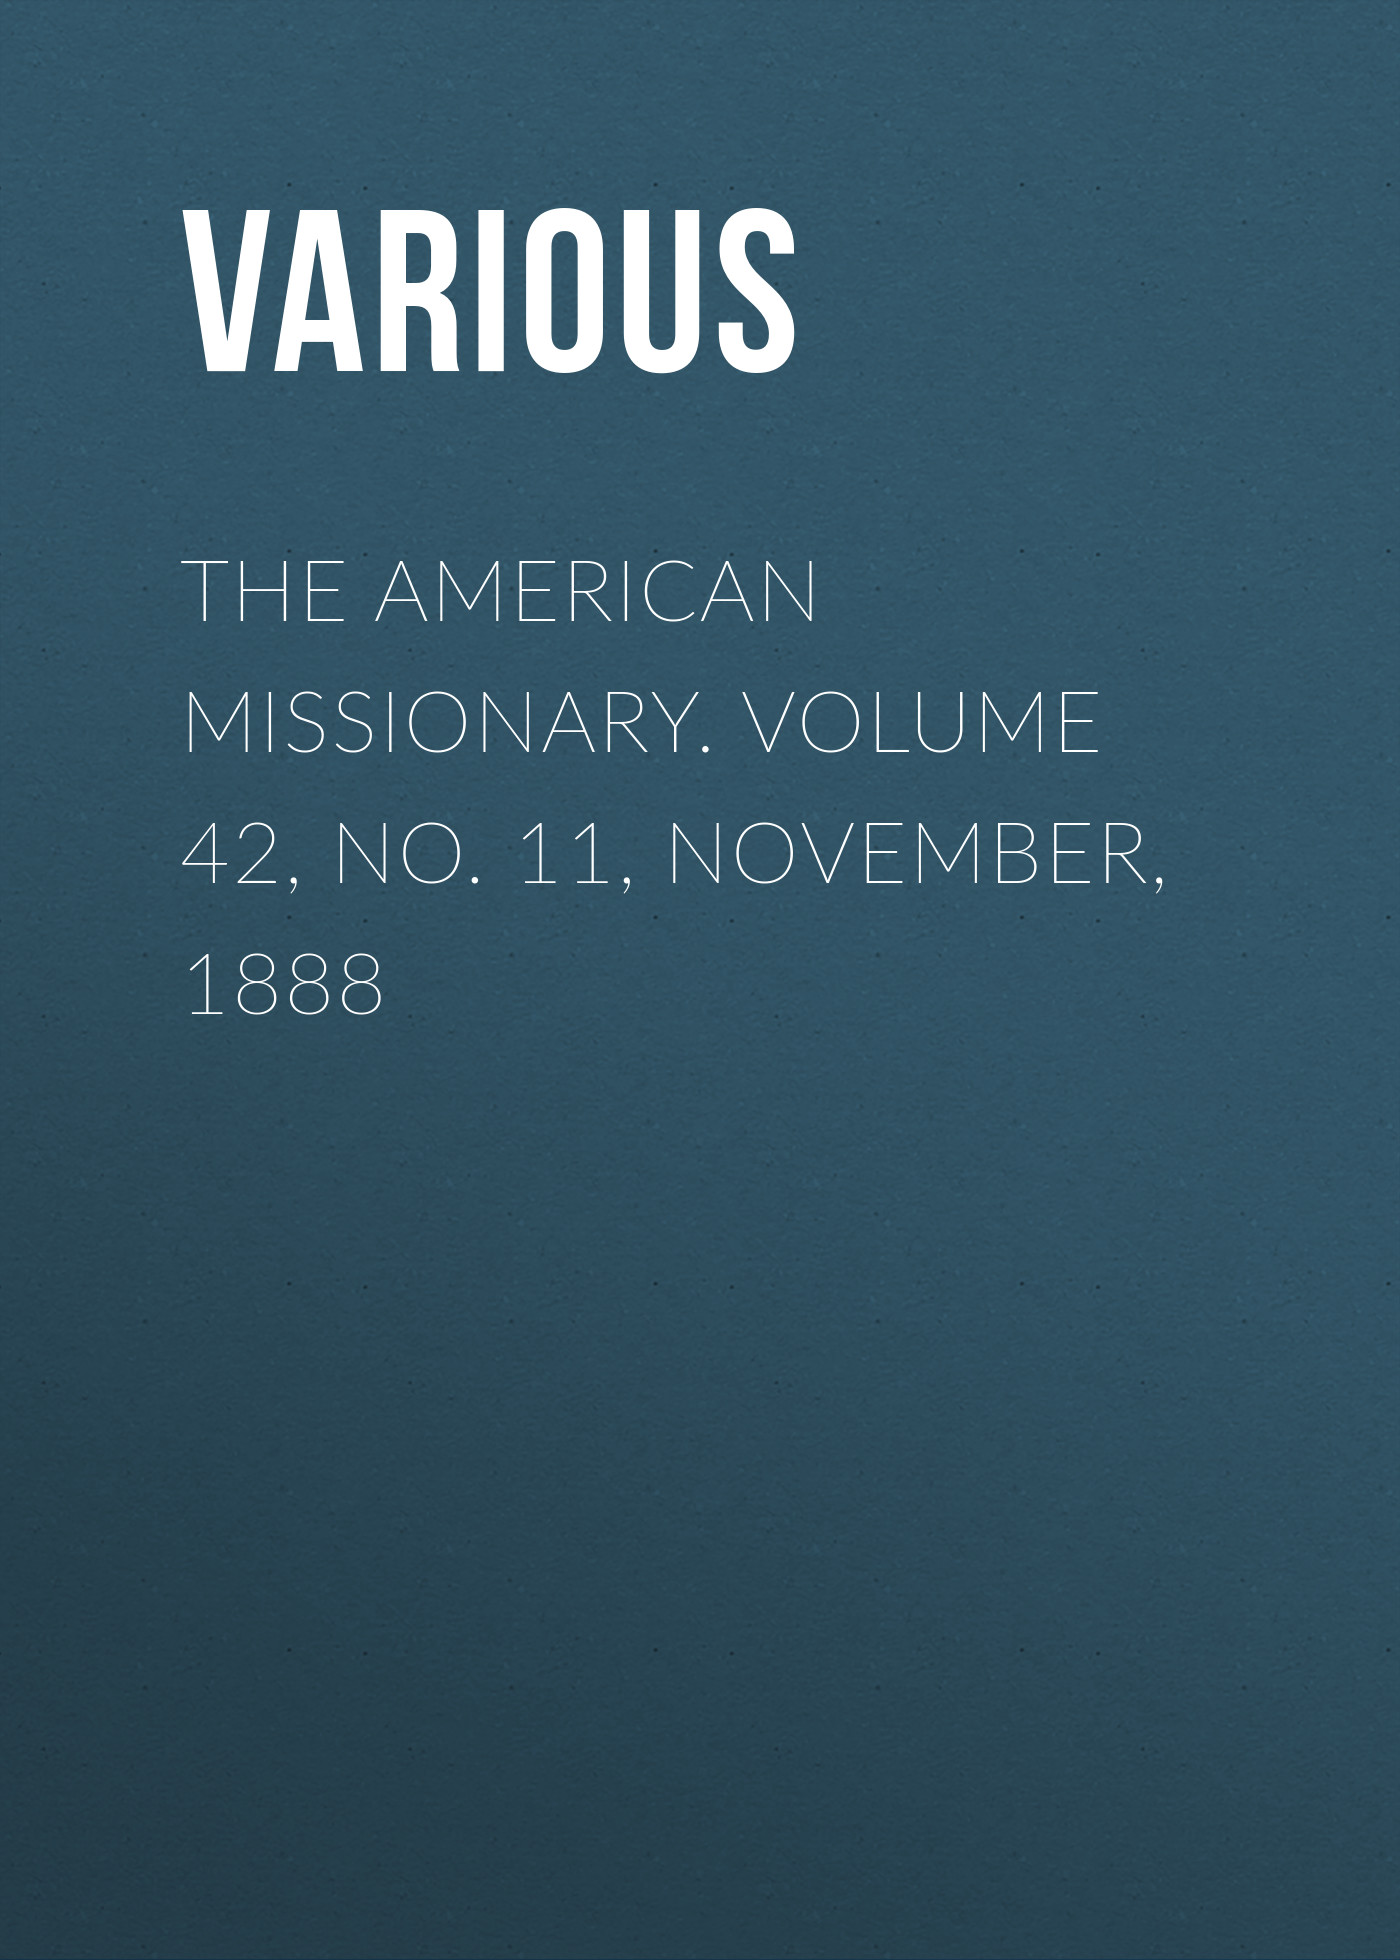 Various The American Missionary. Volume 42, No. 11, November, 1888